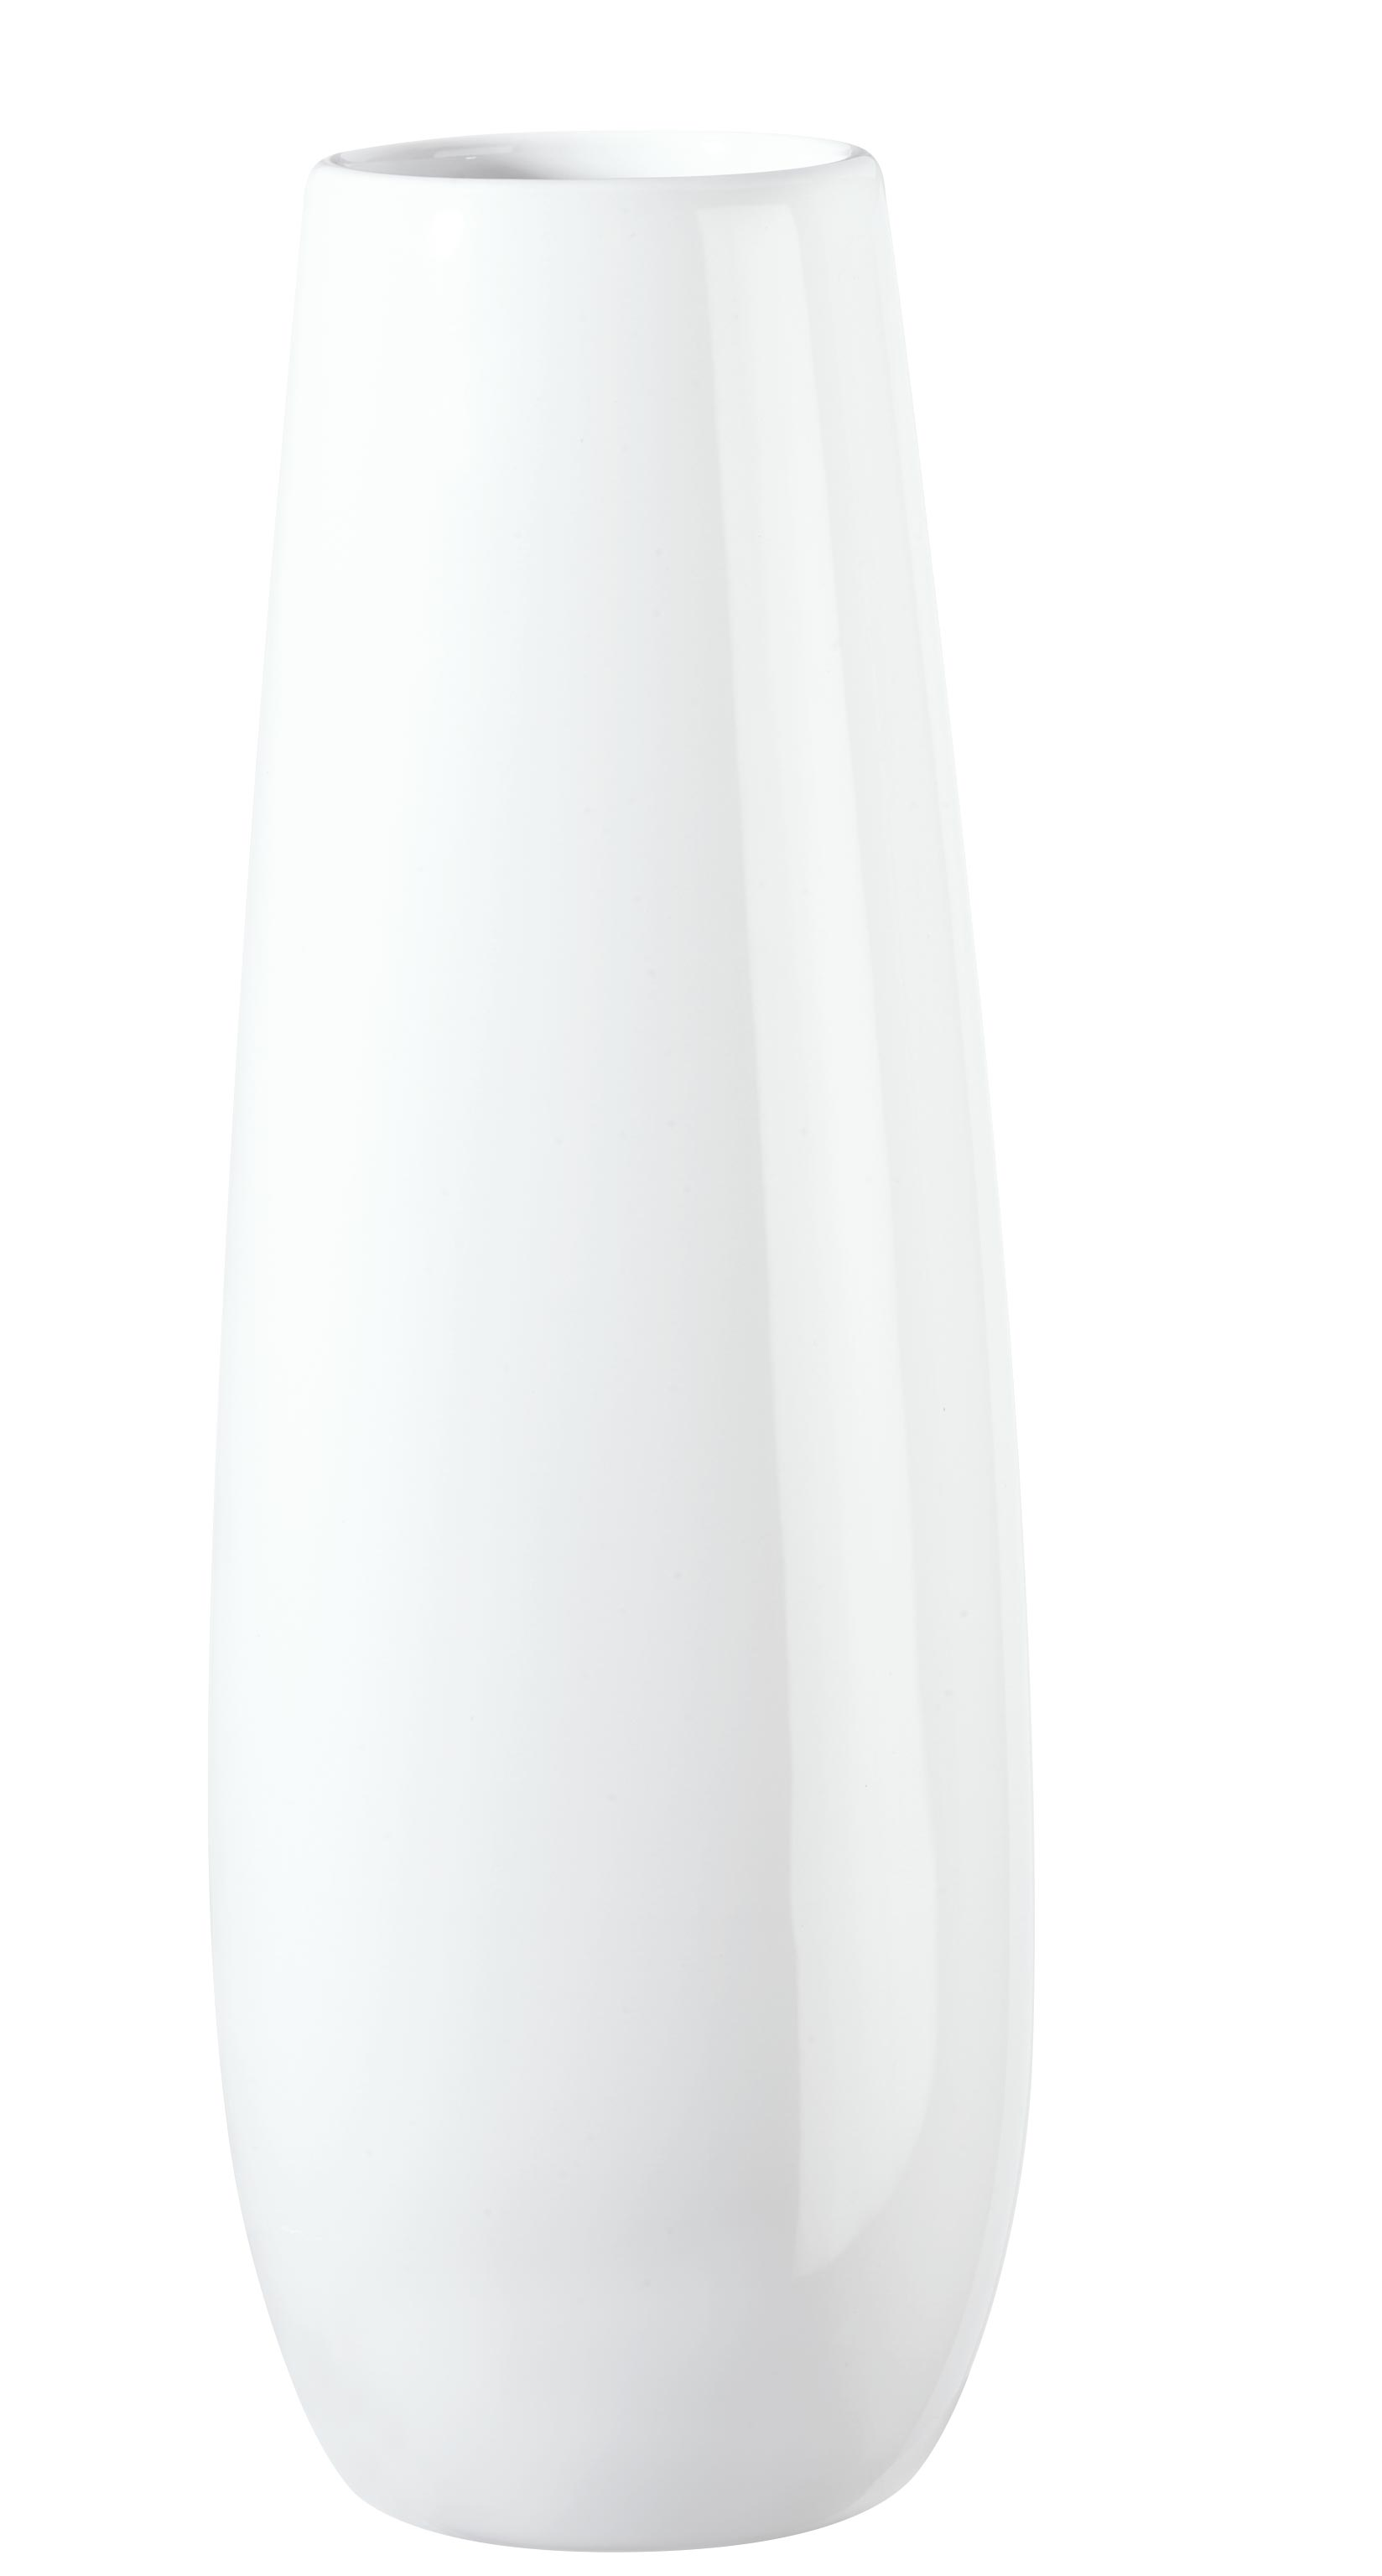 D 23 Cm H 60 Cm Home By Asa Die Asa Selection Wohnwelten